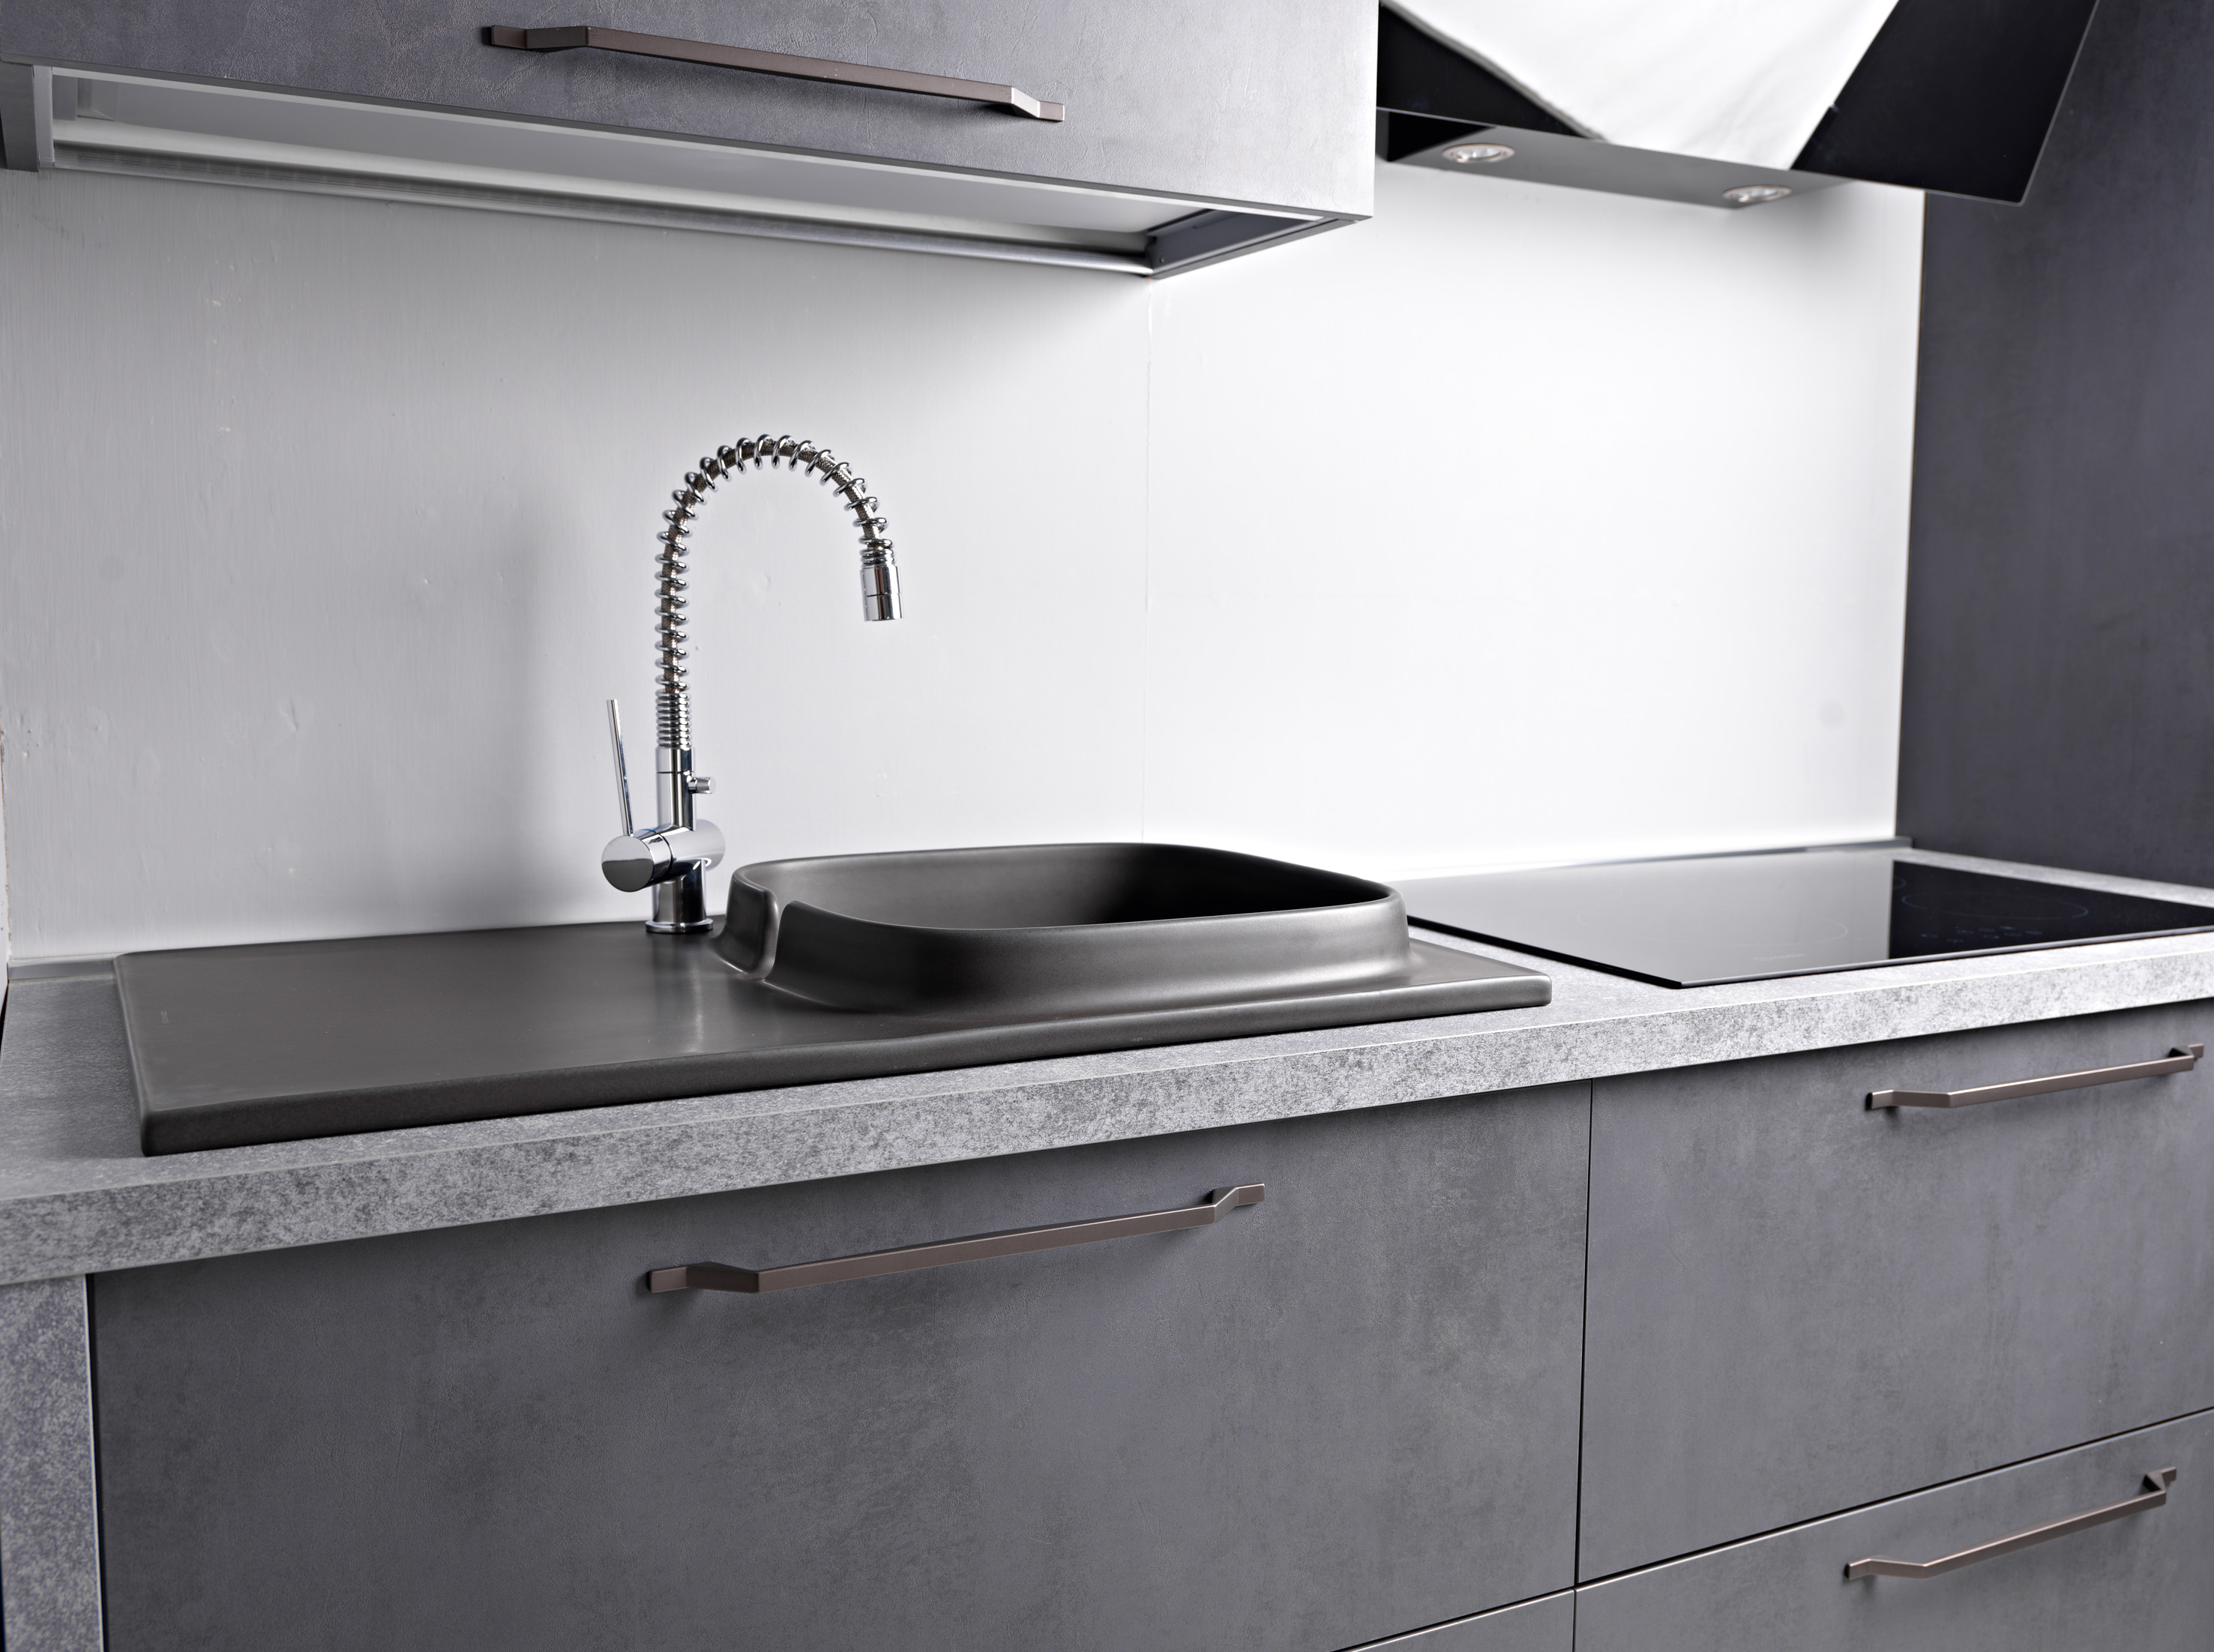 Scarabeo Develops New Decorative Ceramic Kitchen Sink Residential Products Online